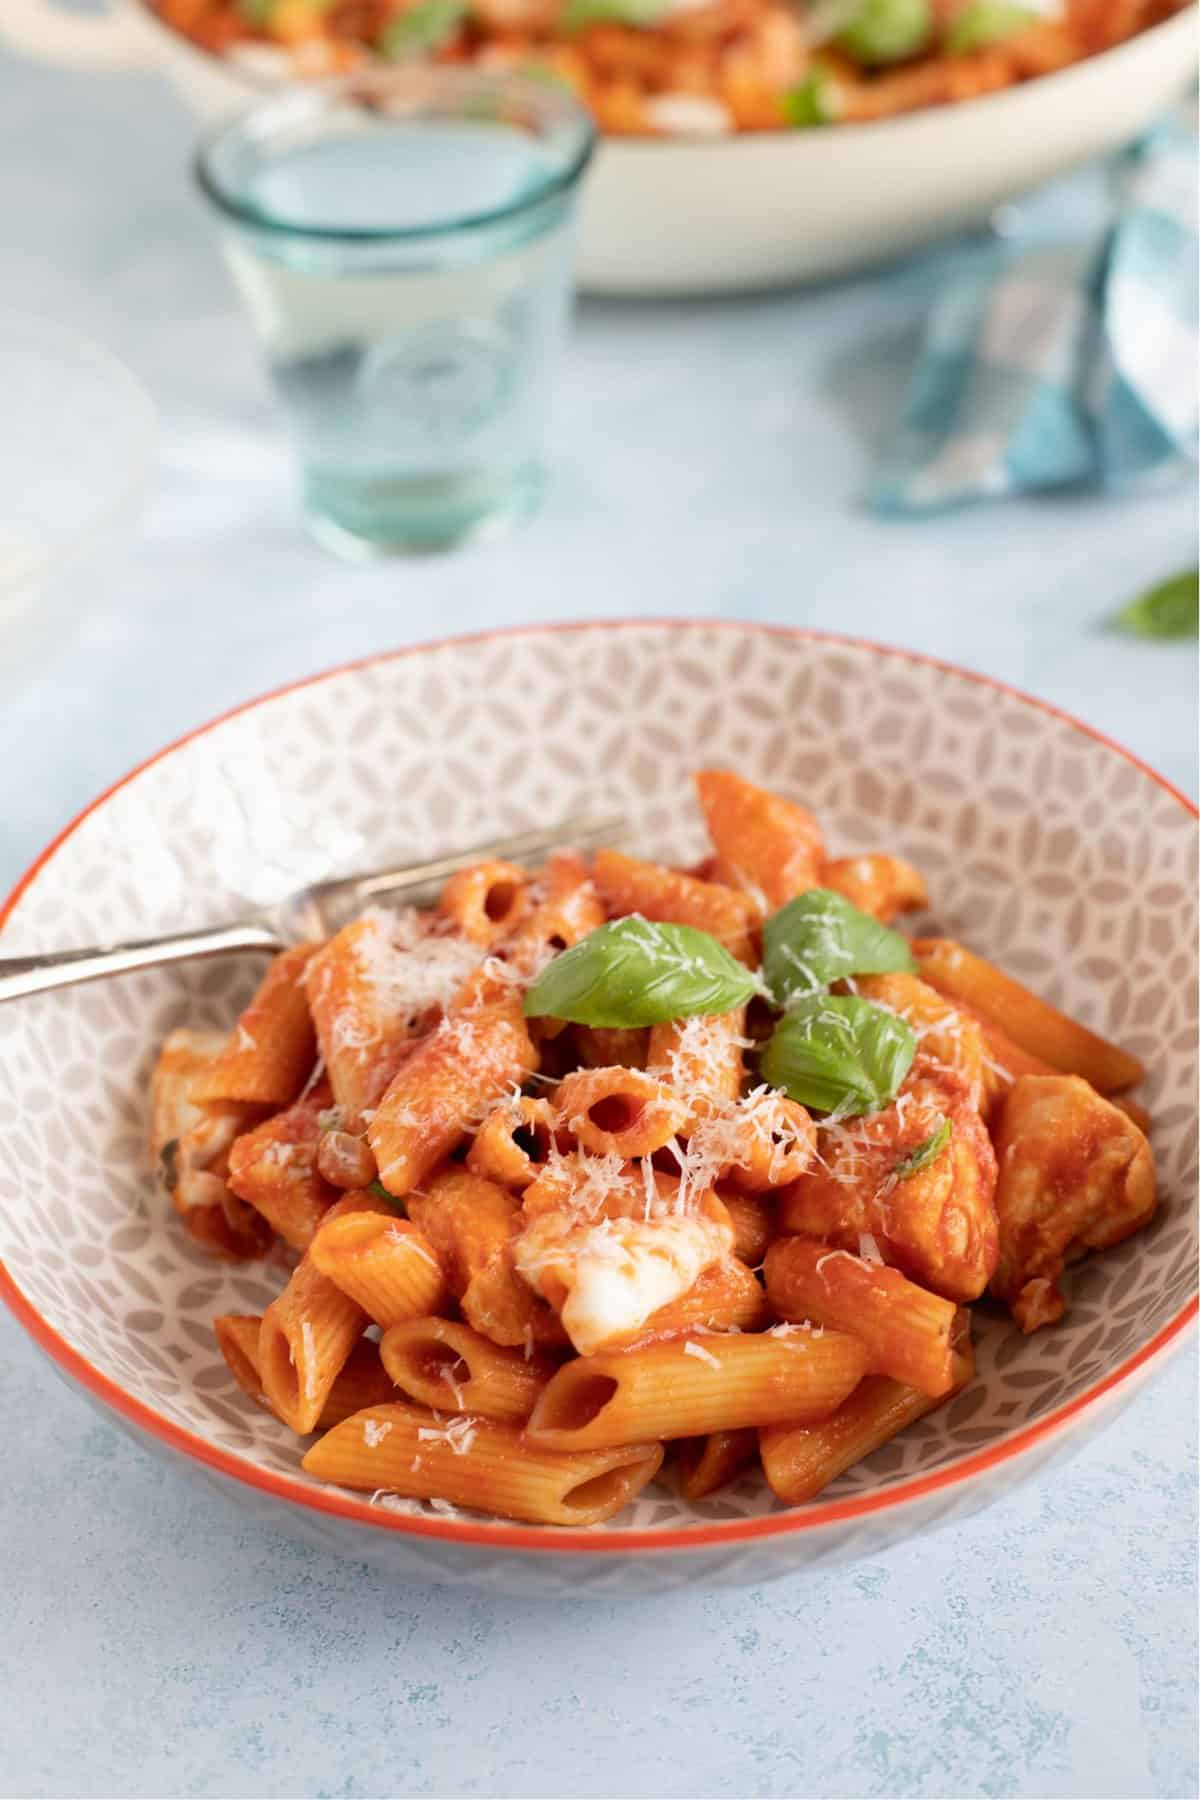 A close up of a bowl of tomato and chicken pasta.